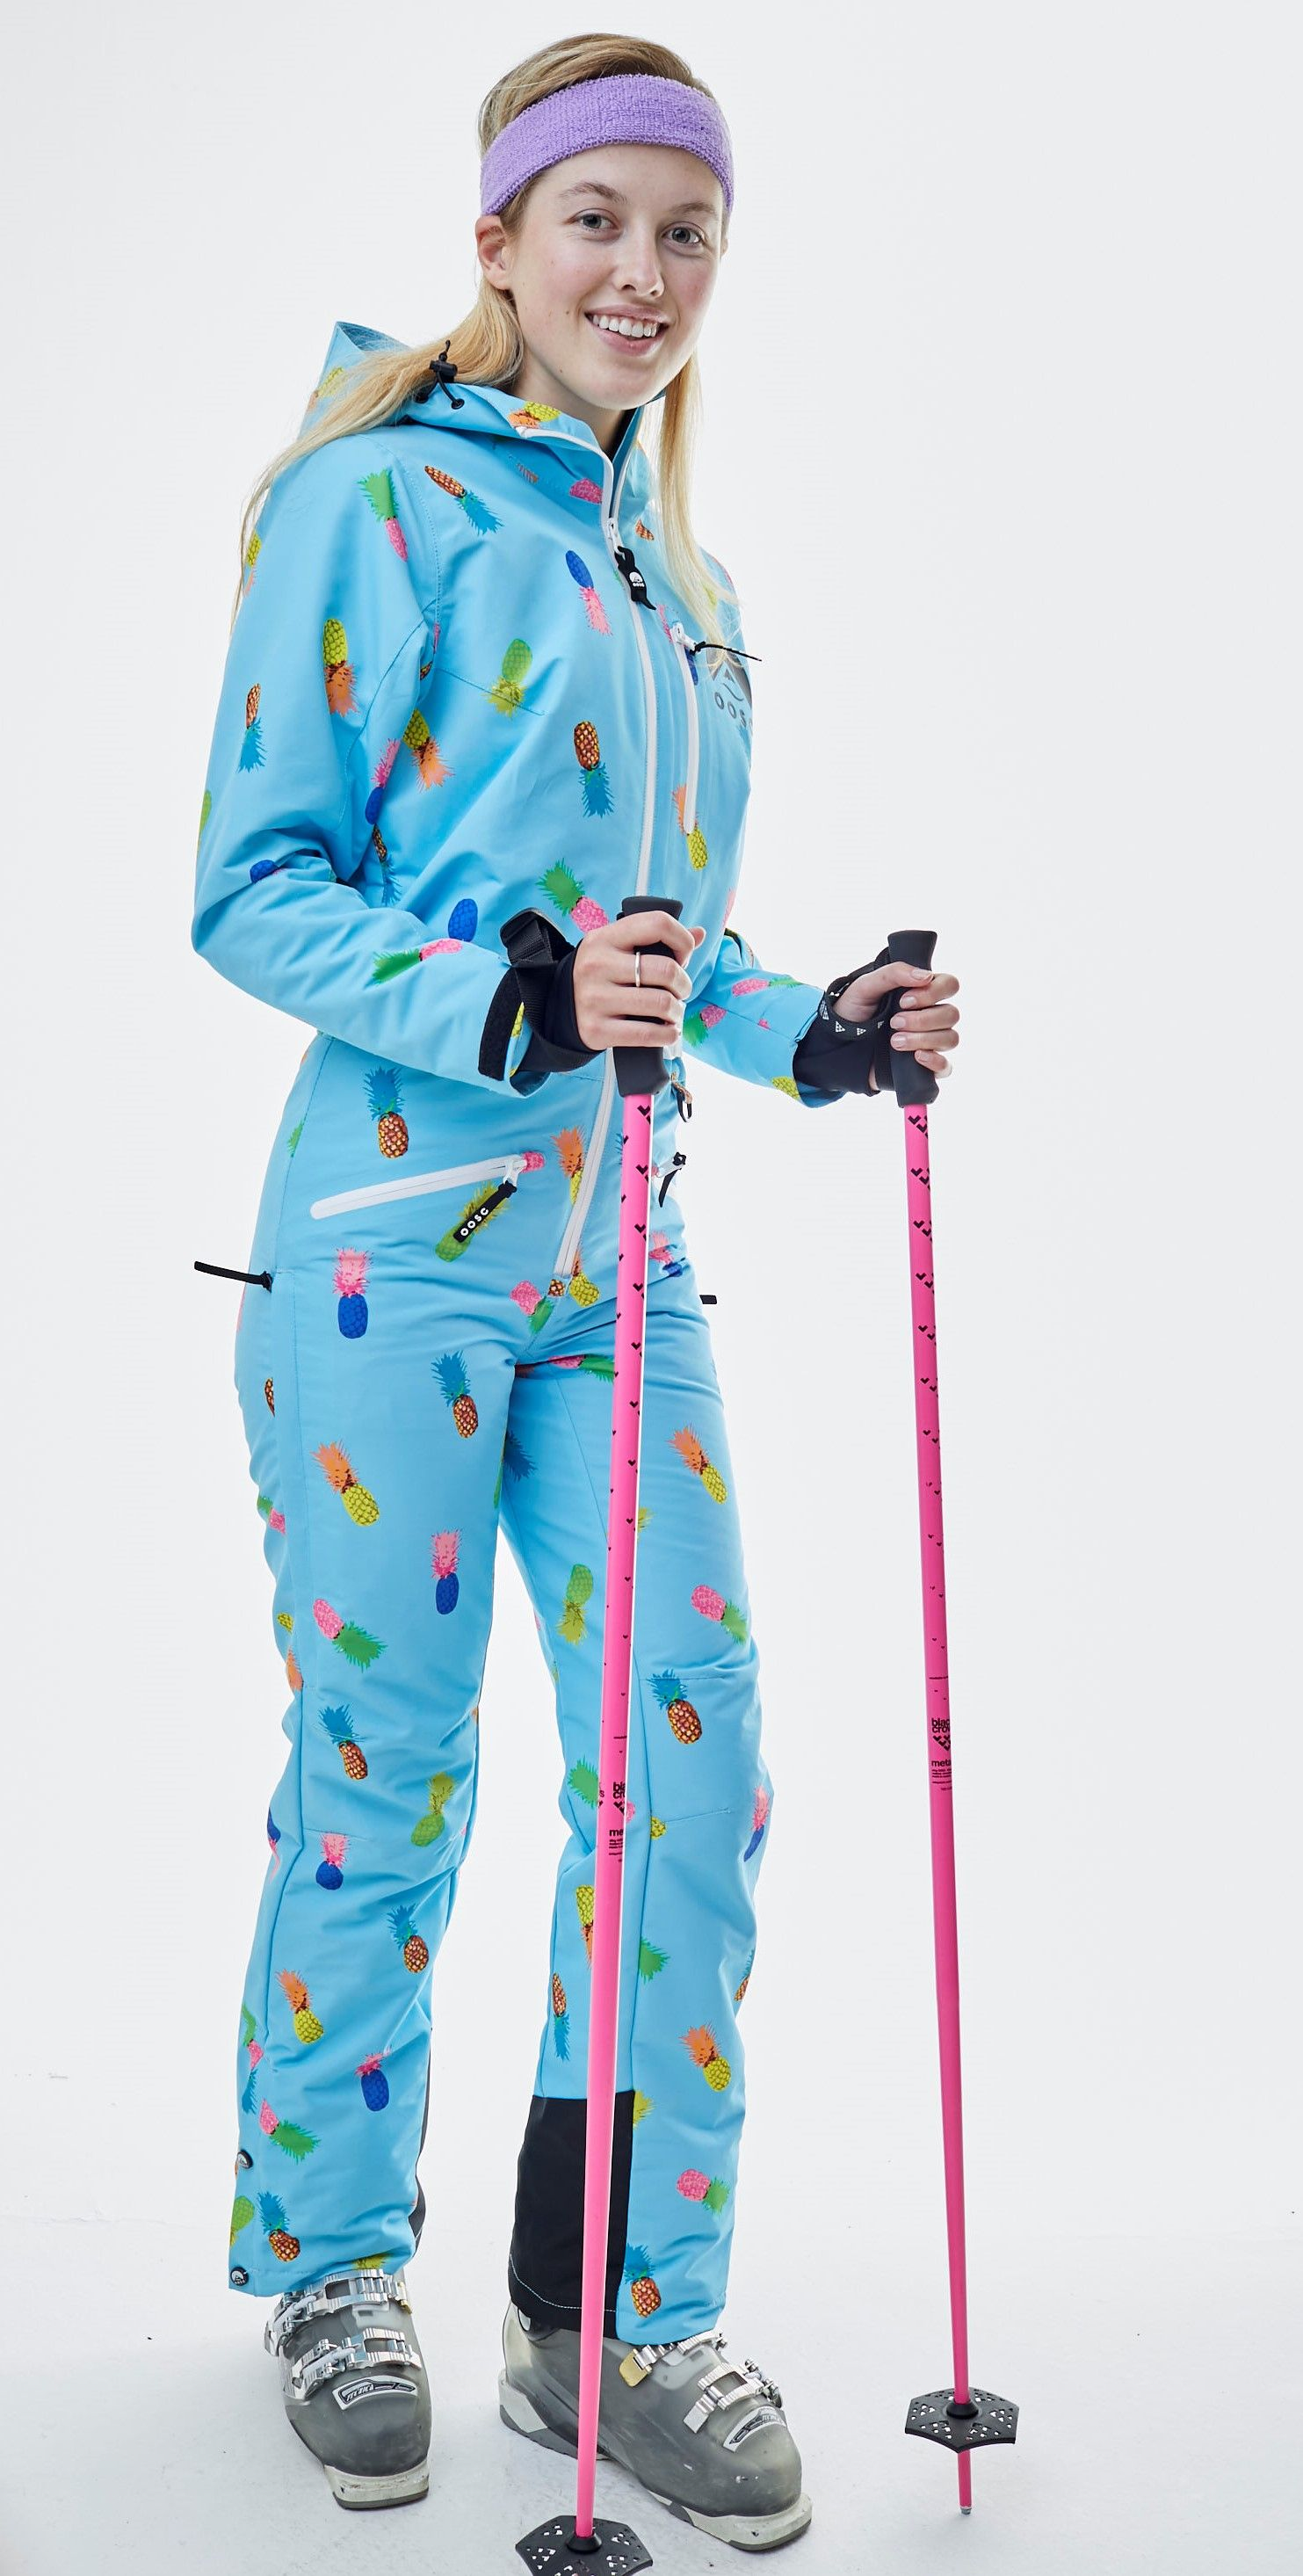 Club Tropicana Women S One Piece Ski Suit Oosc Clothing Skiing Outfit Ski Women Clothes